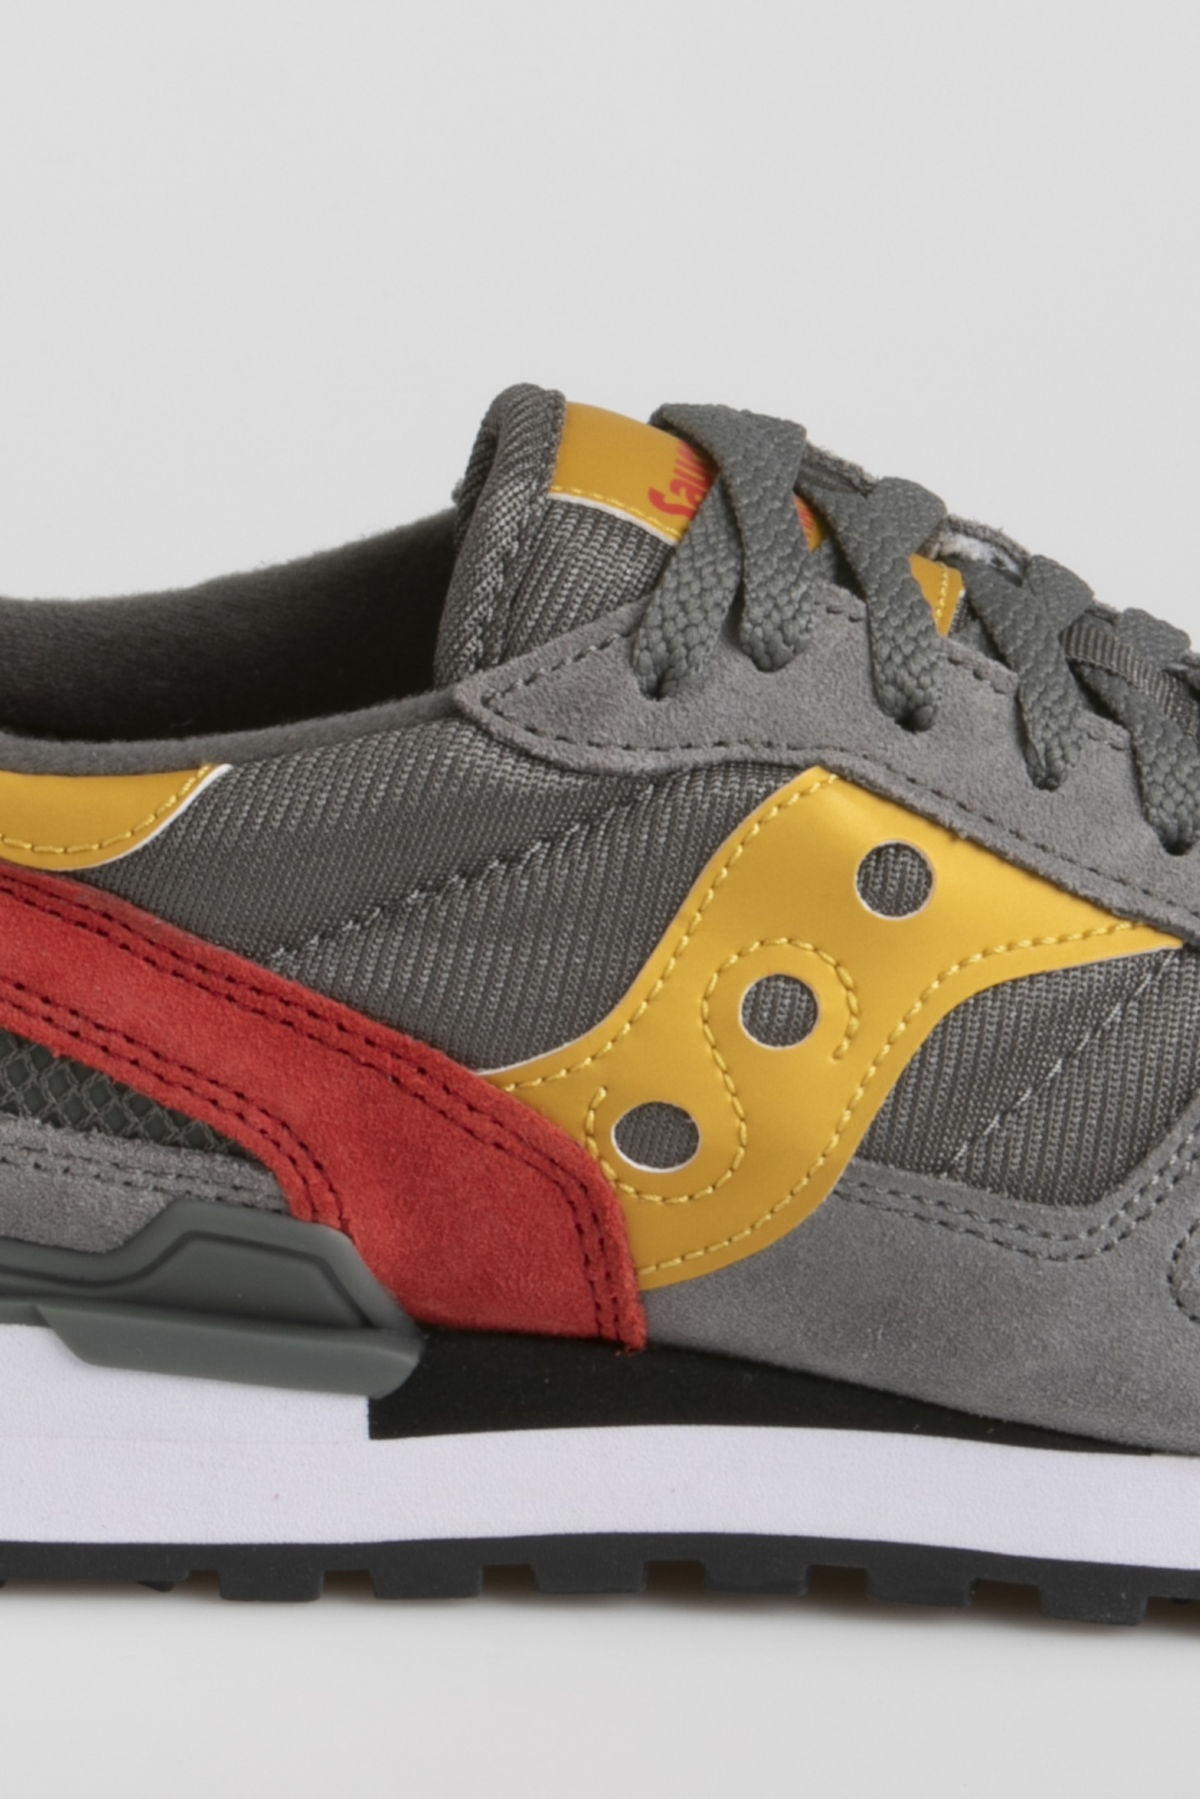 SAUCONY SHADOW O' grey / red/ yellow F/W 19-20